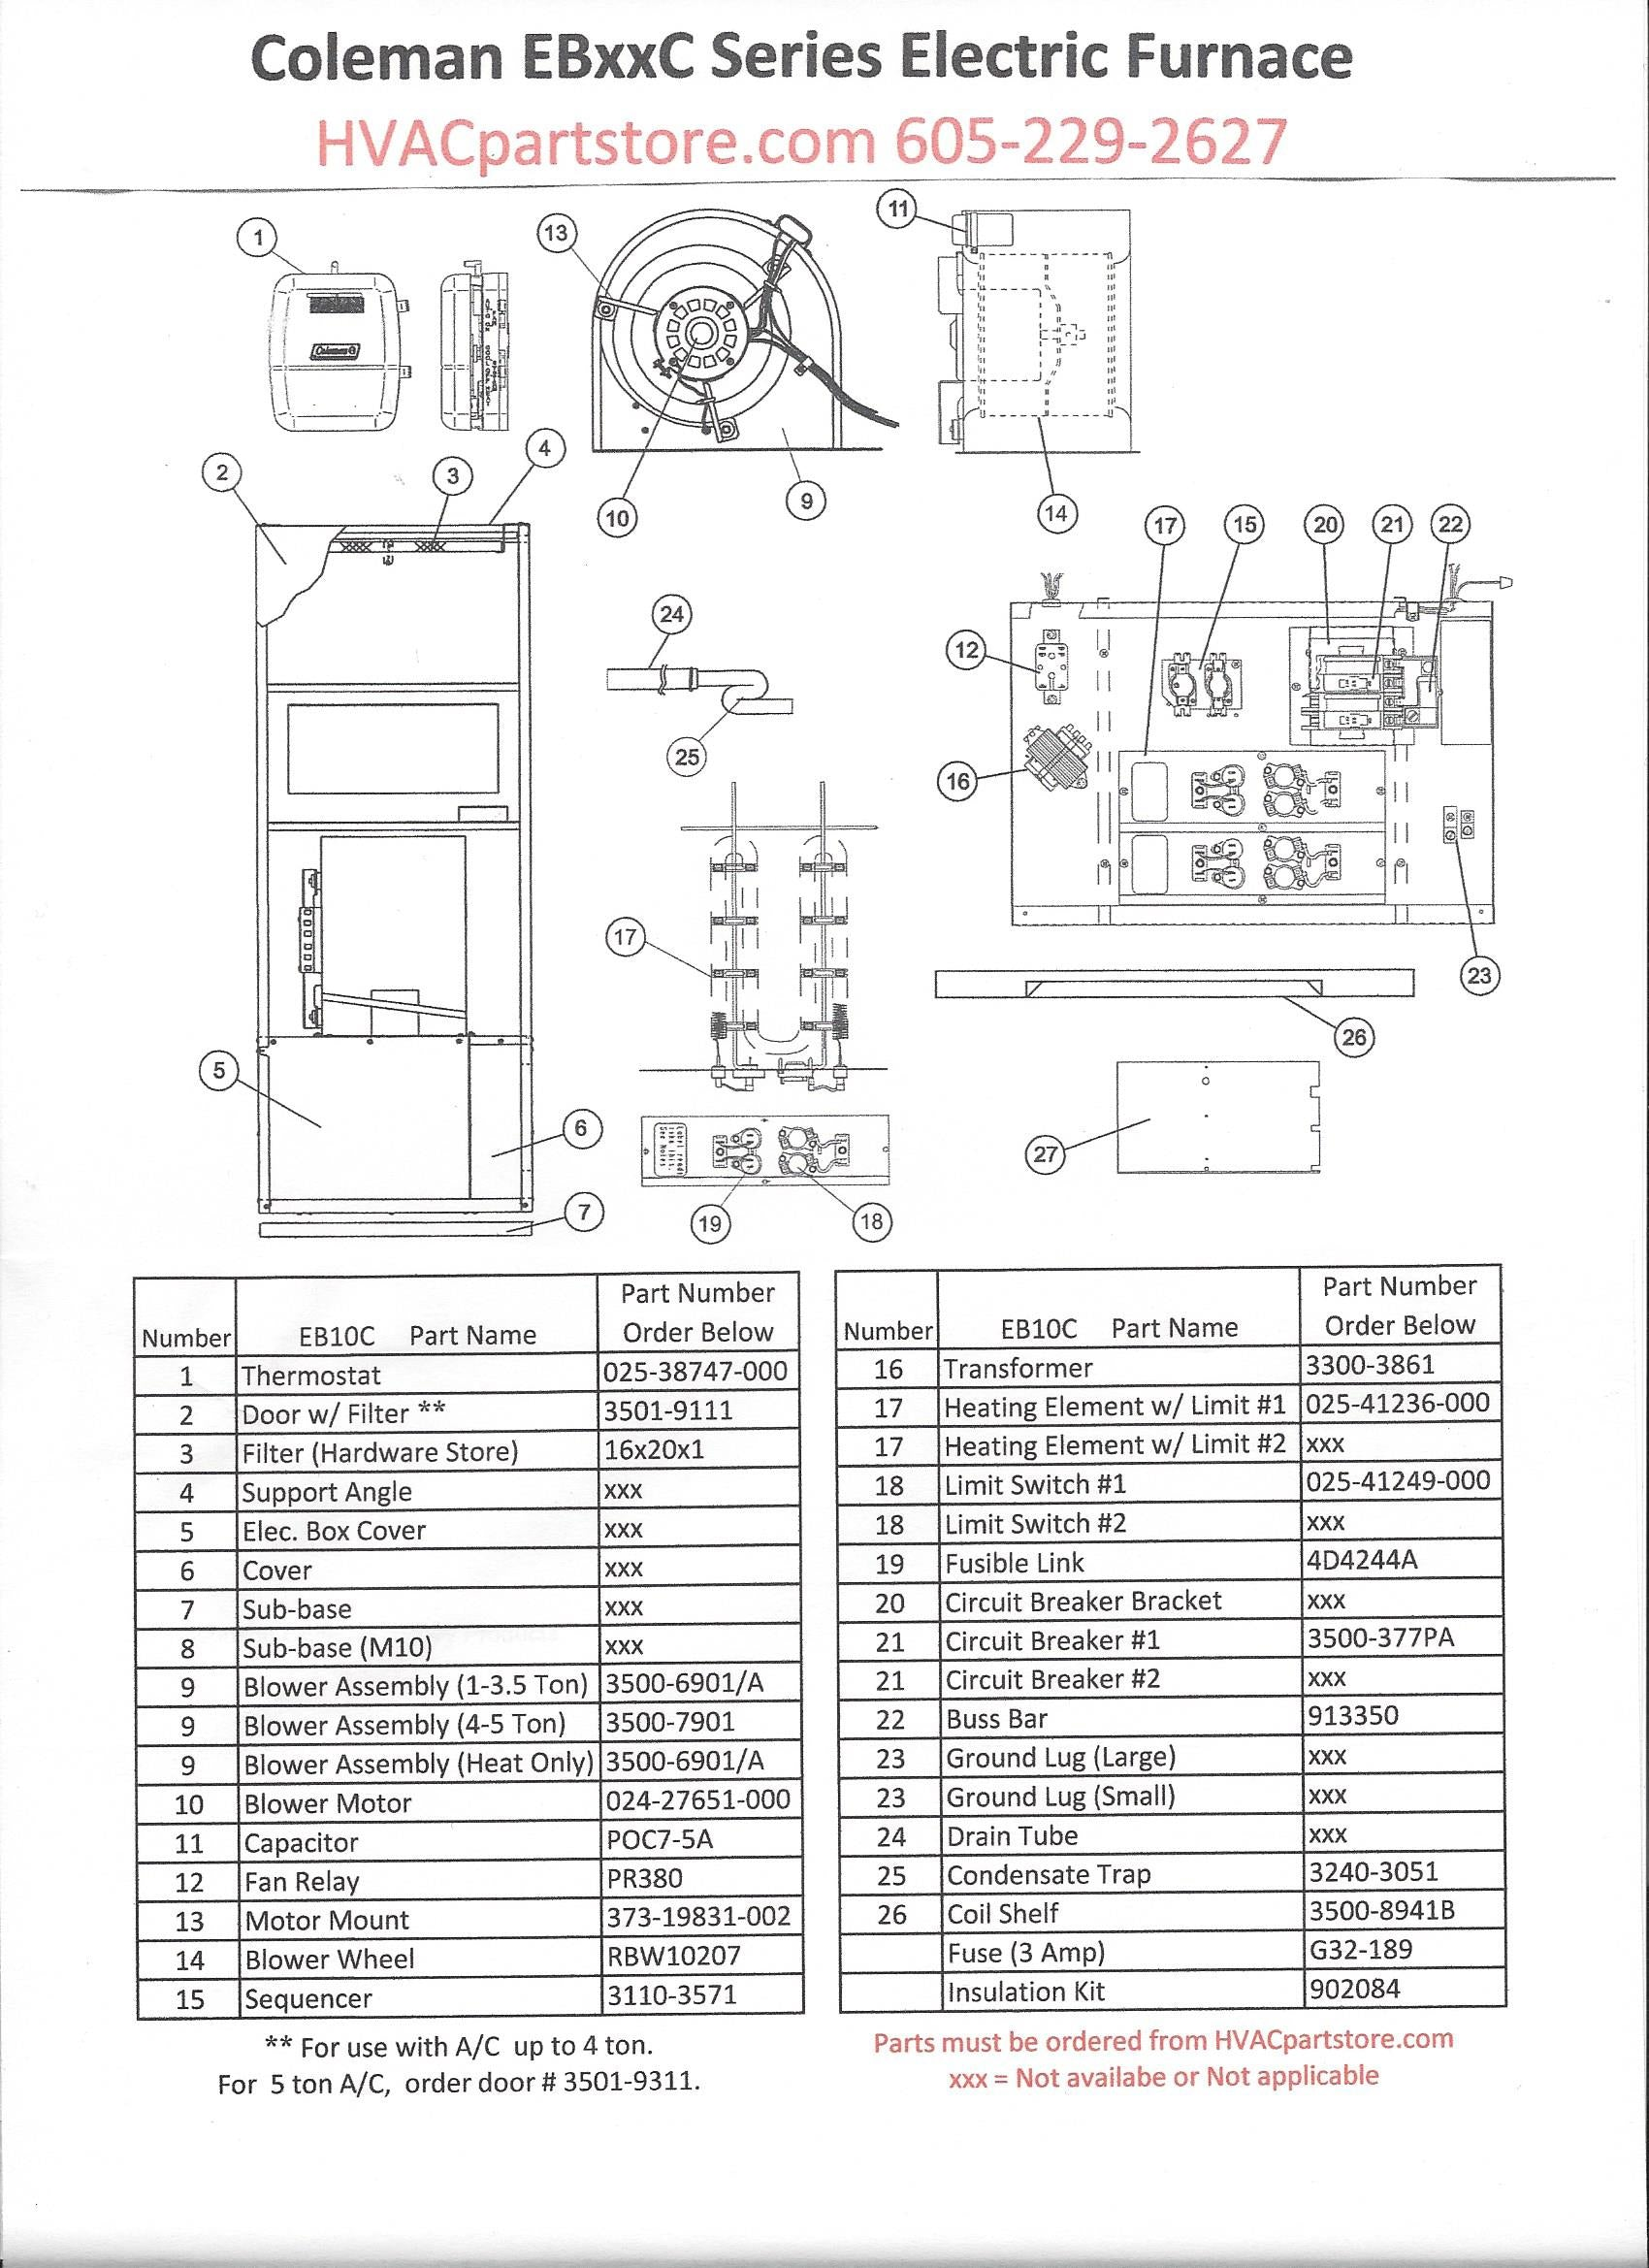 eb10c coleman electric furnace parts  u2013 hvacpartstore